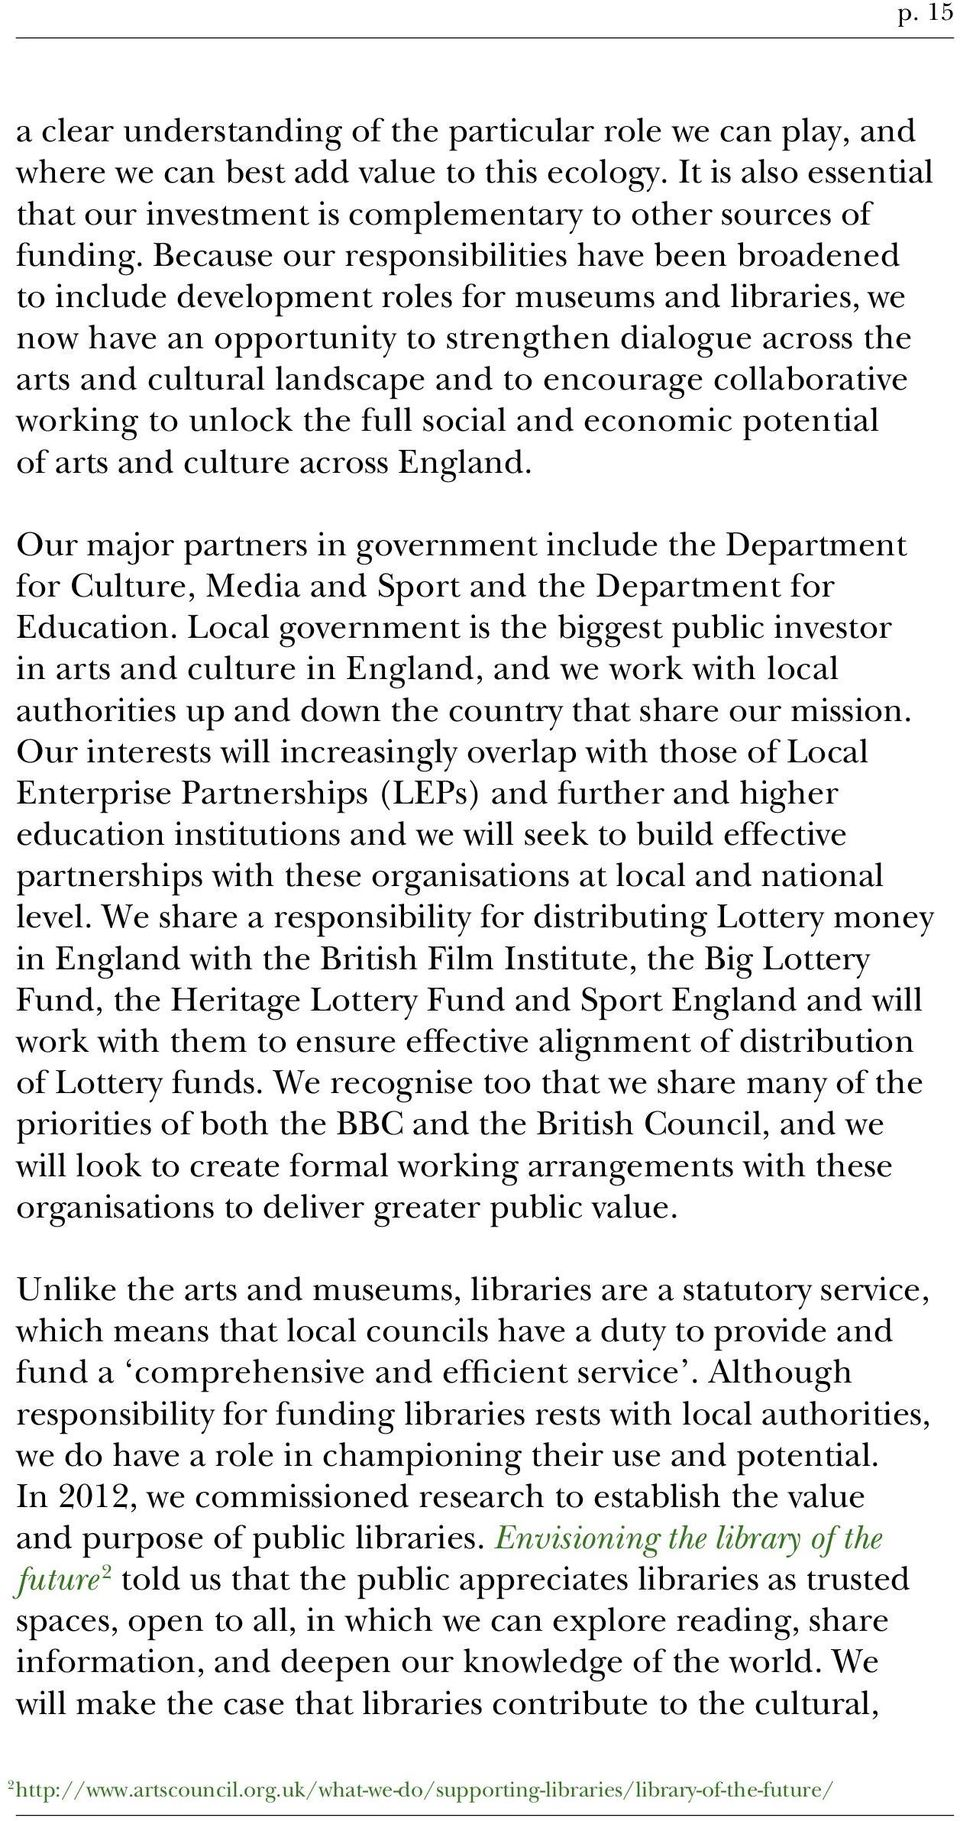 to encourage collaborative working to unlock the full social and economic potential of arts and culture across England.